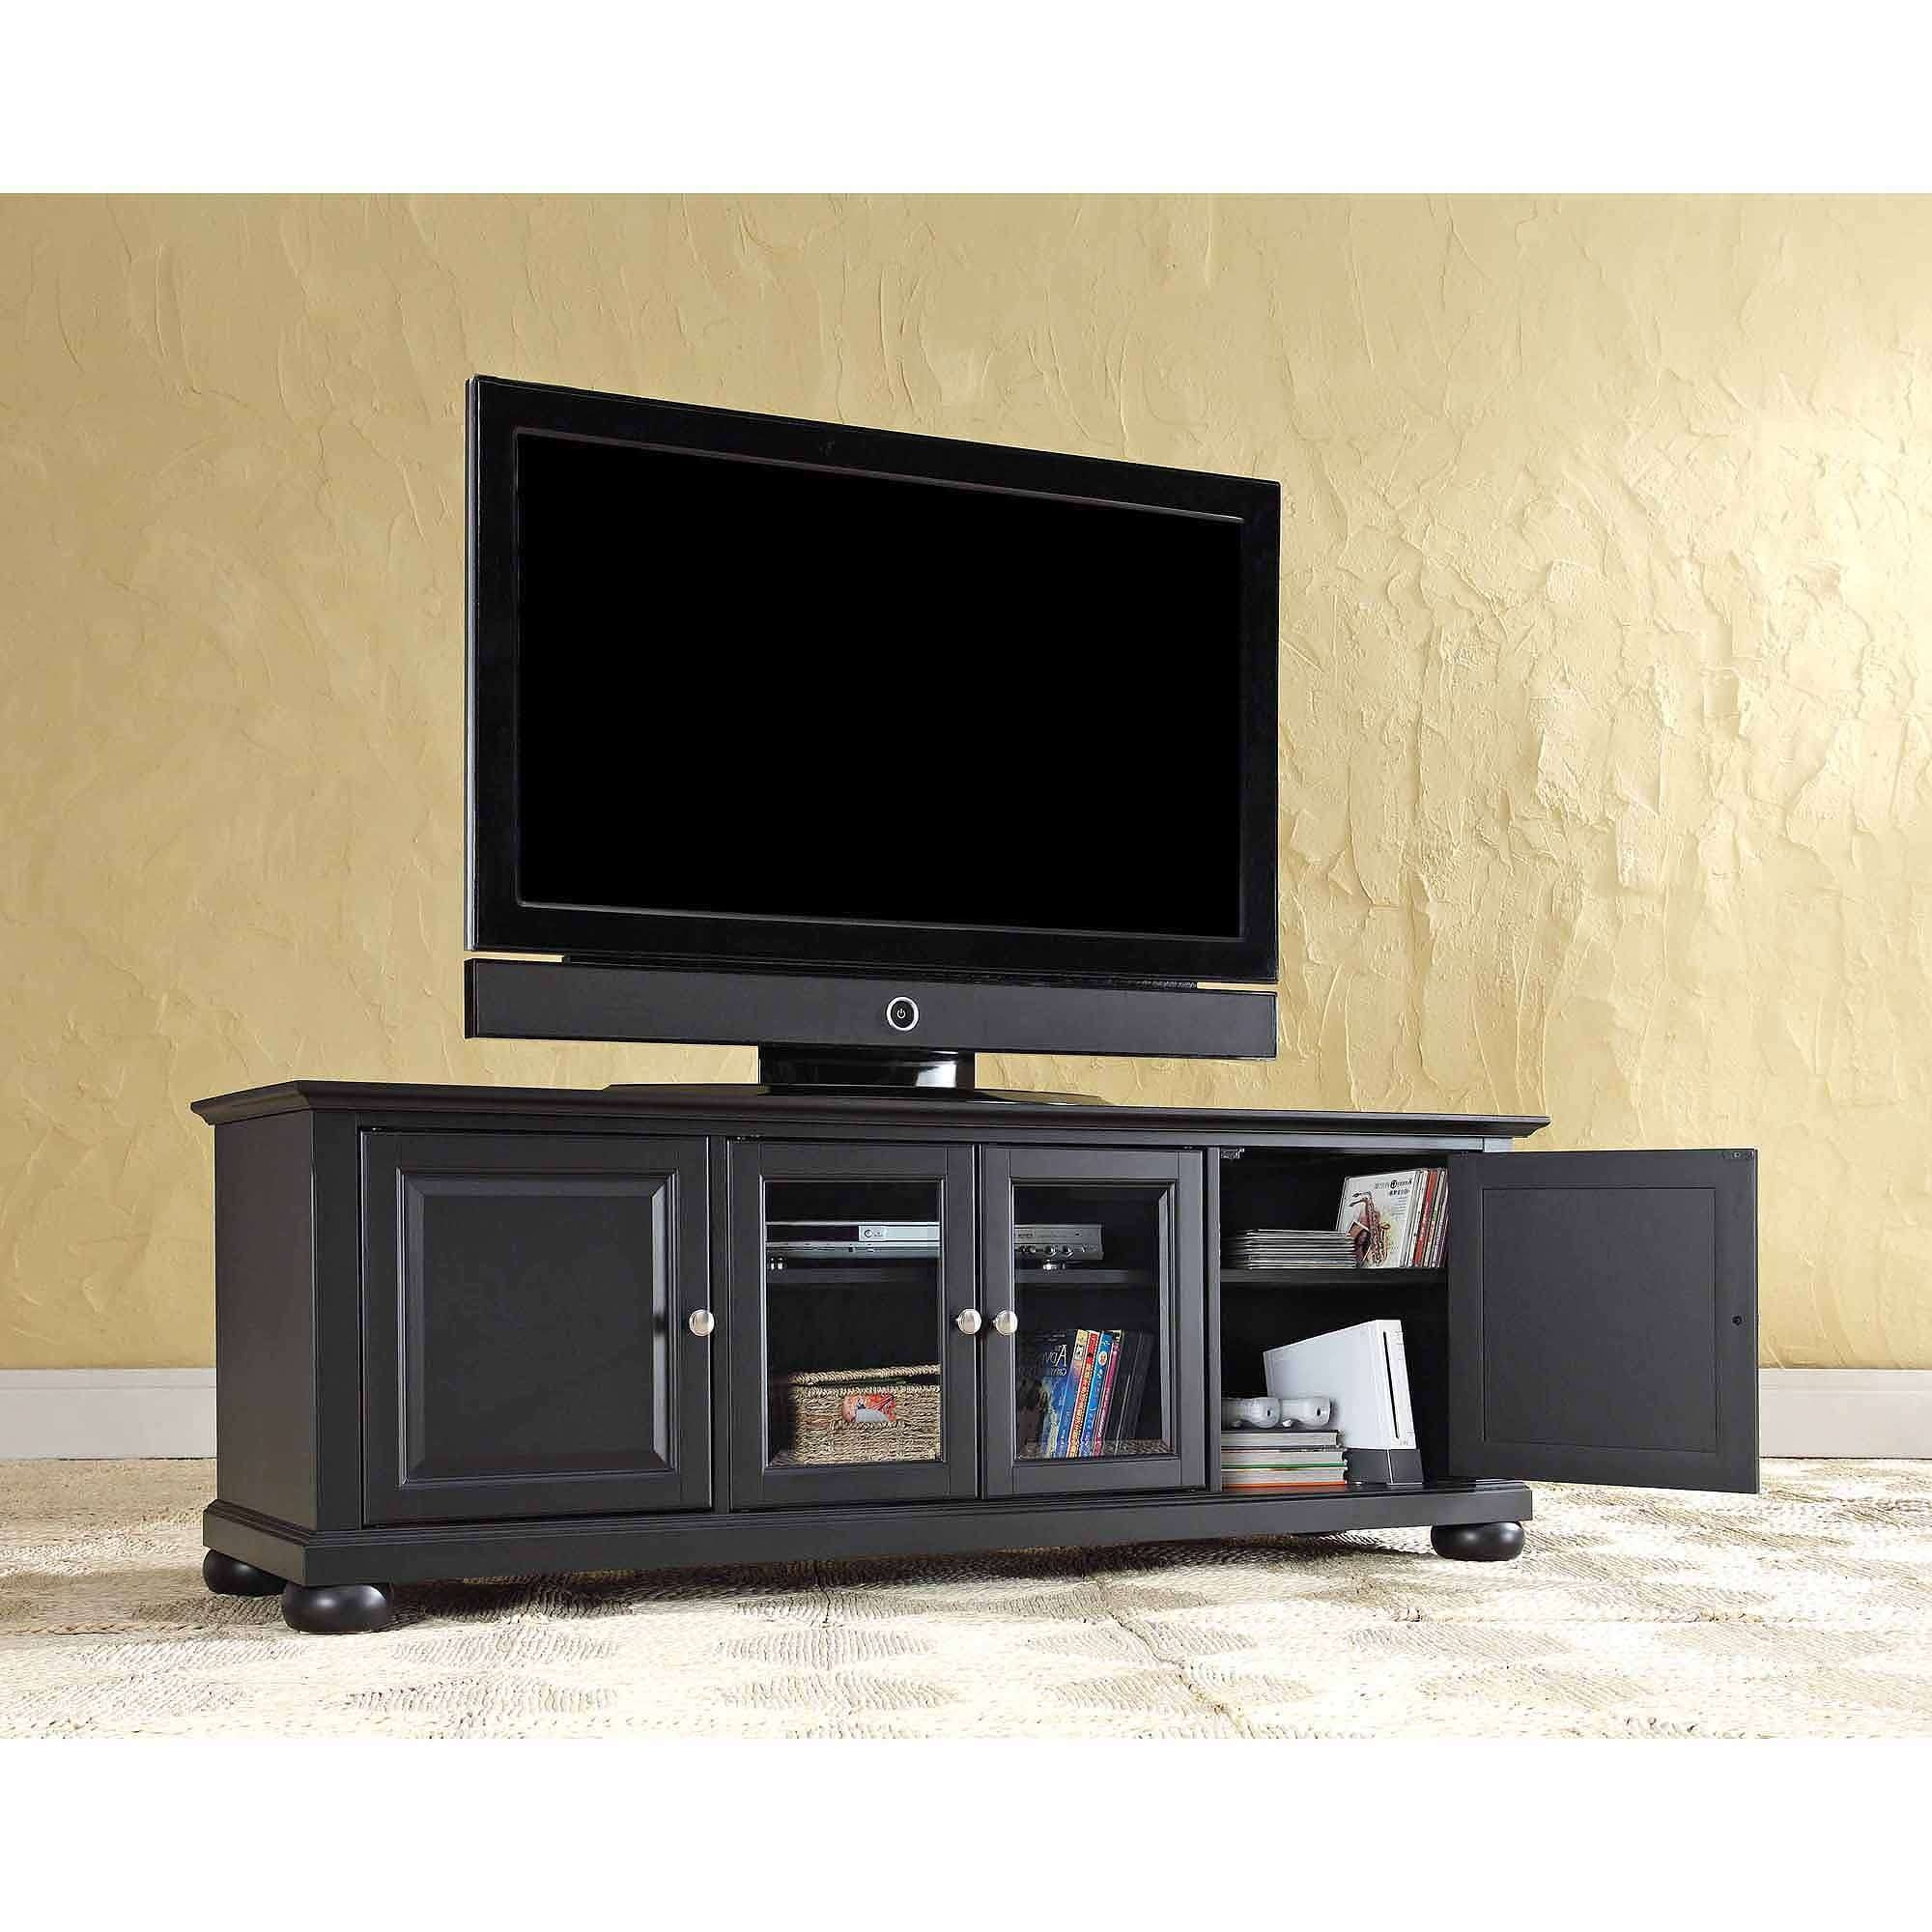 Tv Stand : Tv Stands Corner Tvnd For Inch Flat Screen Remarkable Intended For Corner 60 Inch Tv Stands (View 12 of 15)